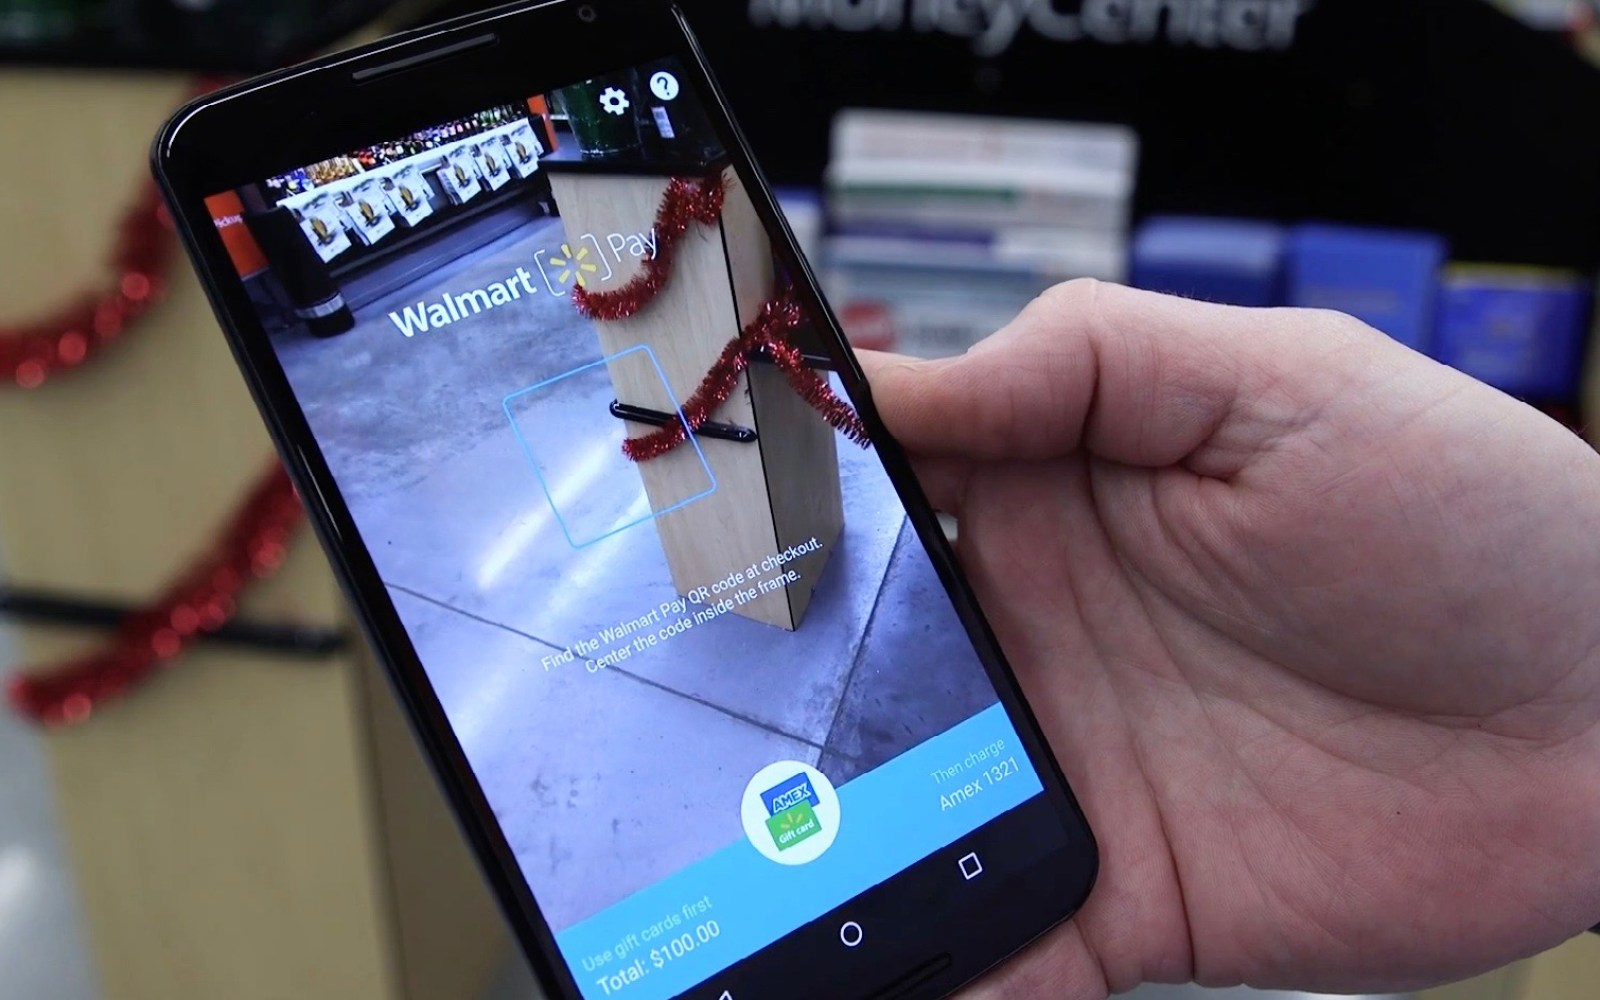 Apple Pay holdout Walmart brings its own digital wallet to over 500 stores